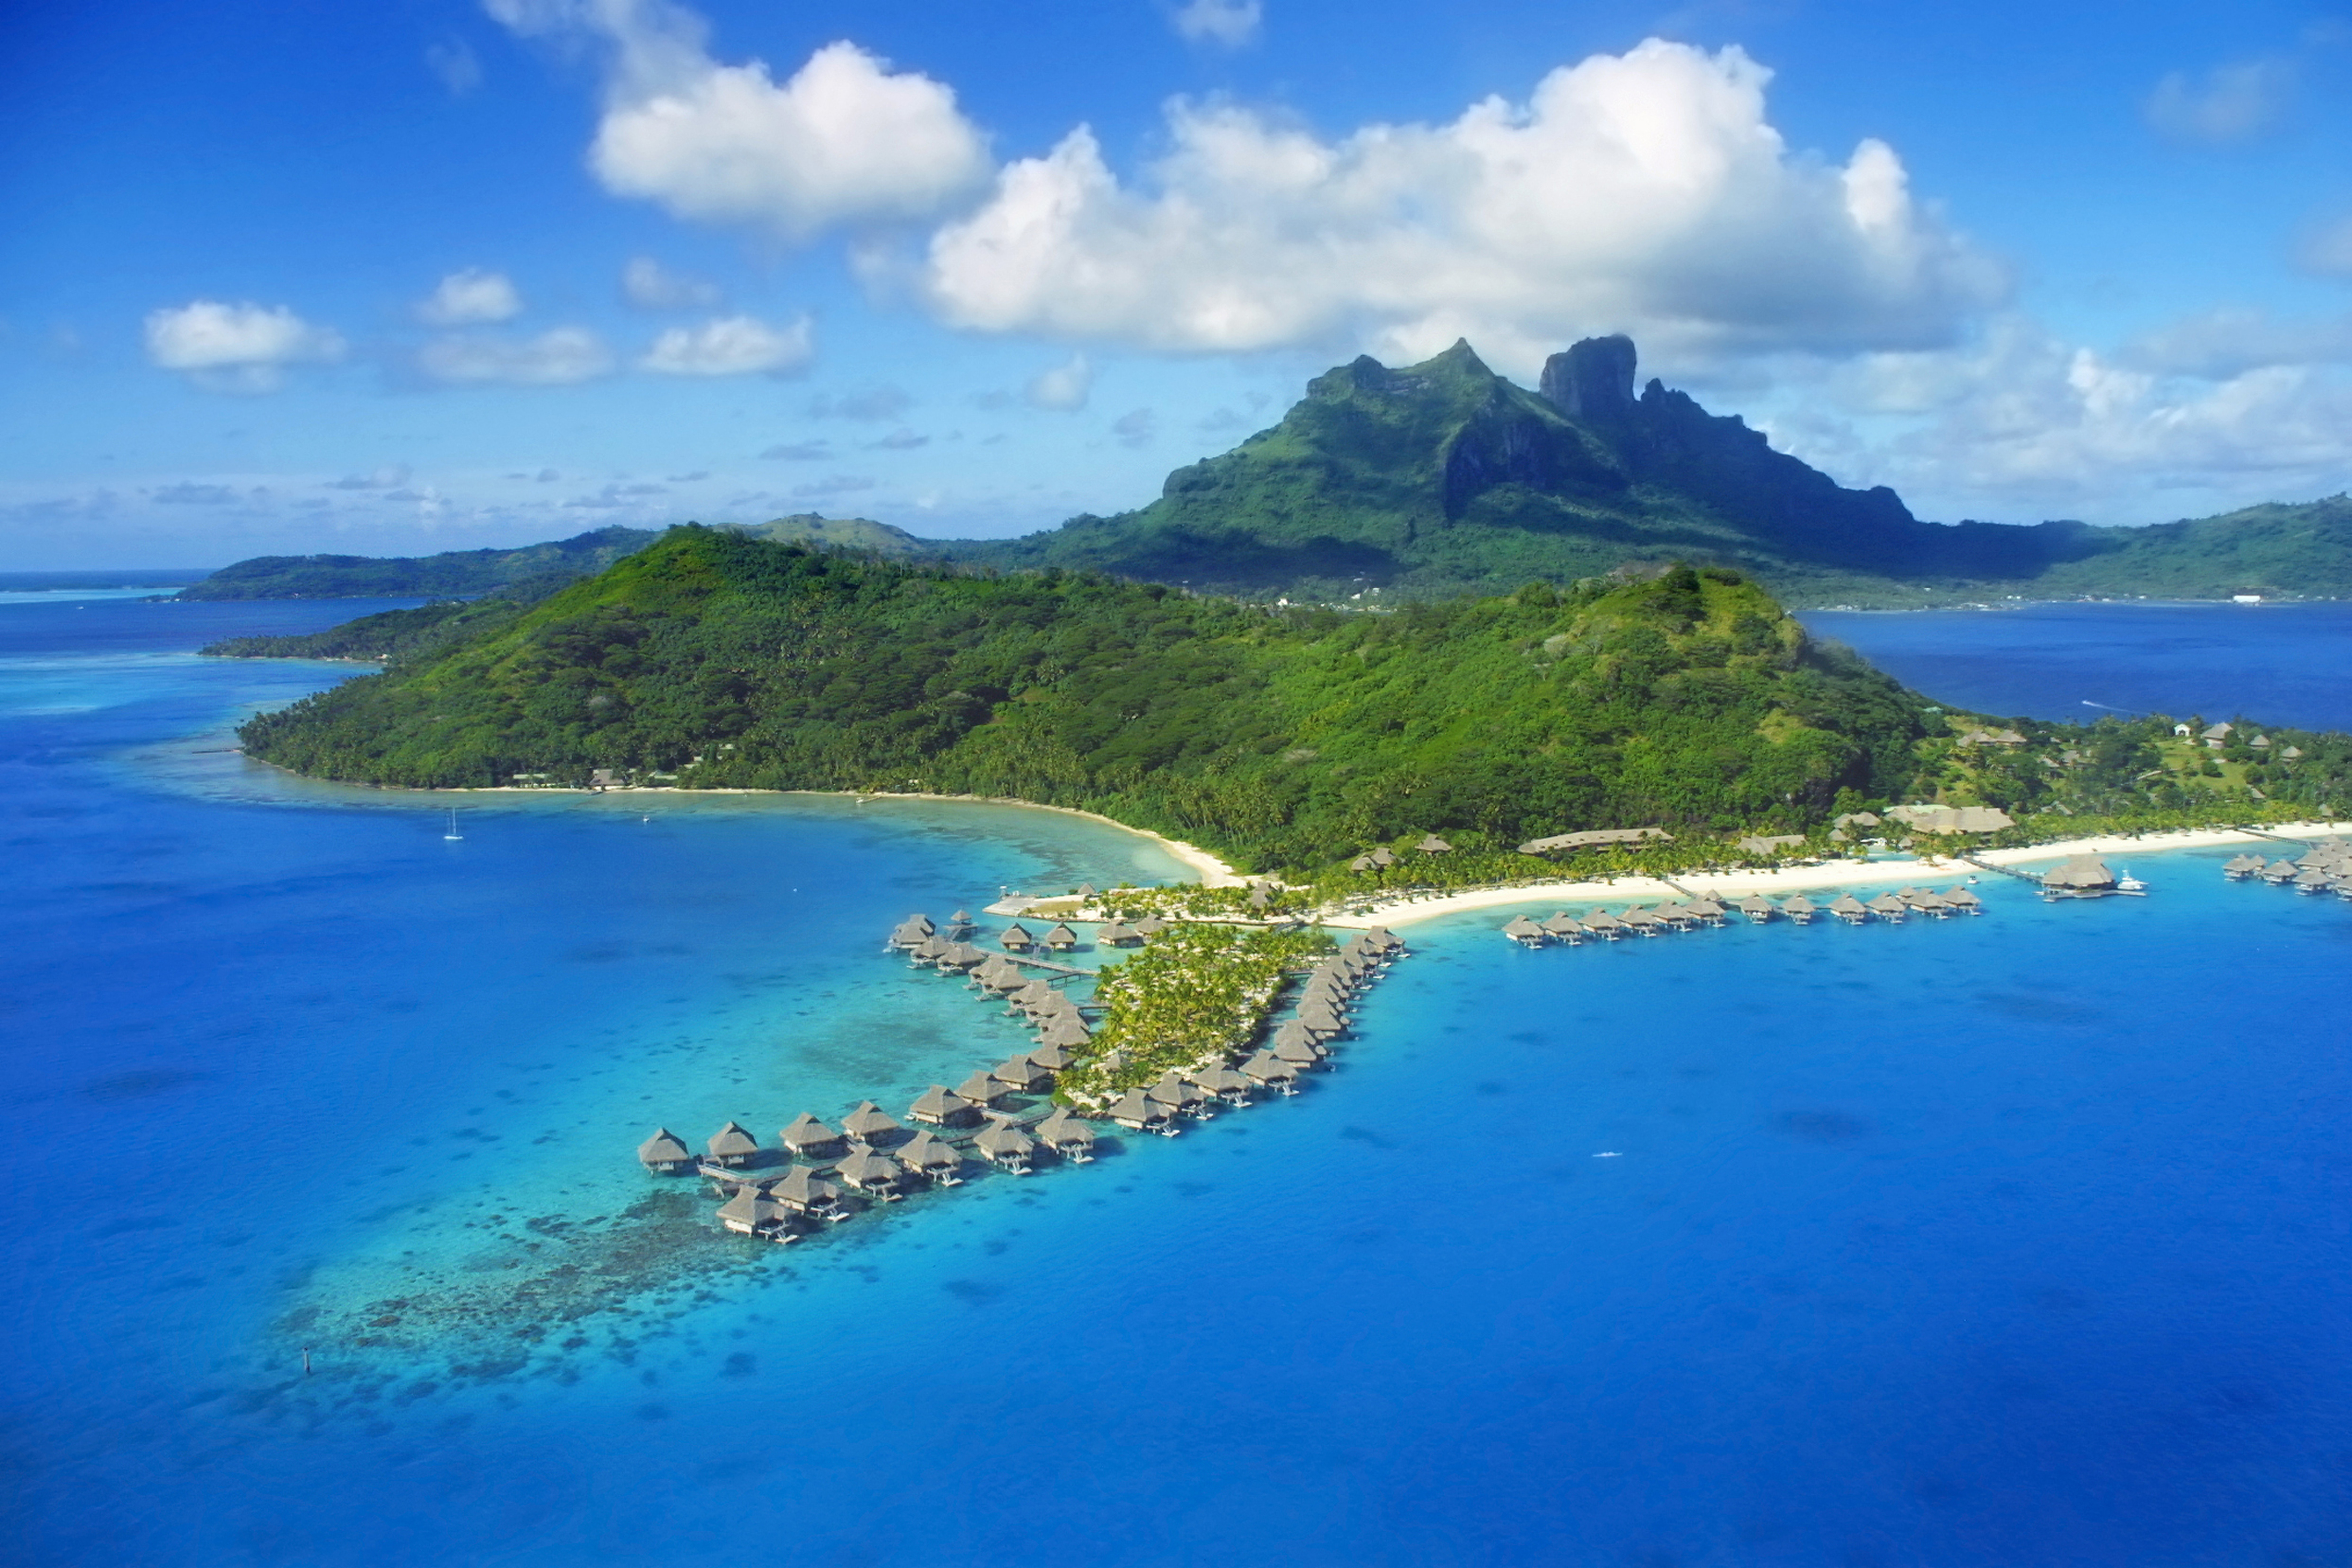 24 Bora Bora Hd Wallpapers Background Images Wallpaper Abyss